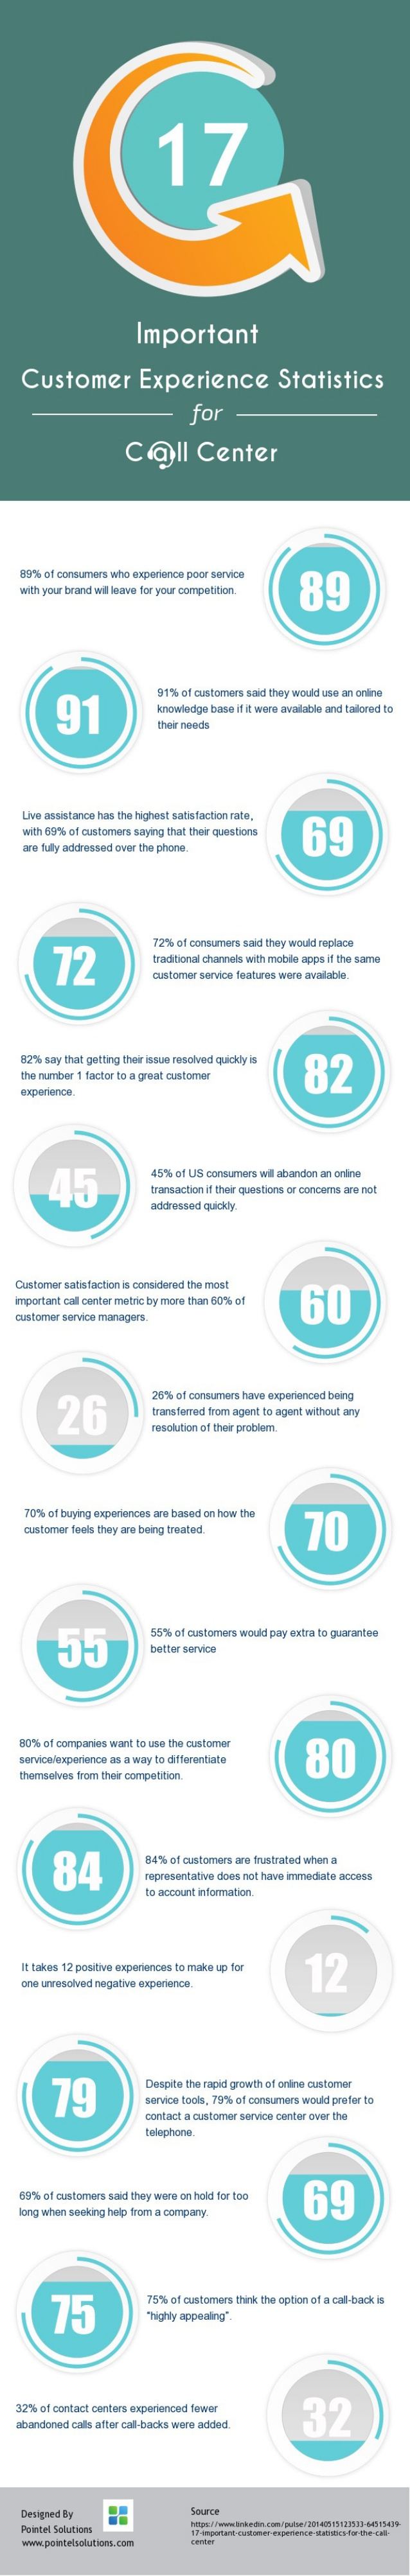 17 datos sobre experiencia al cliente para Call Center